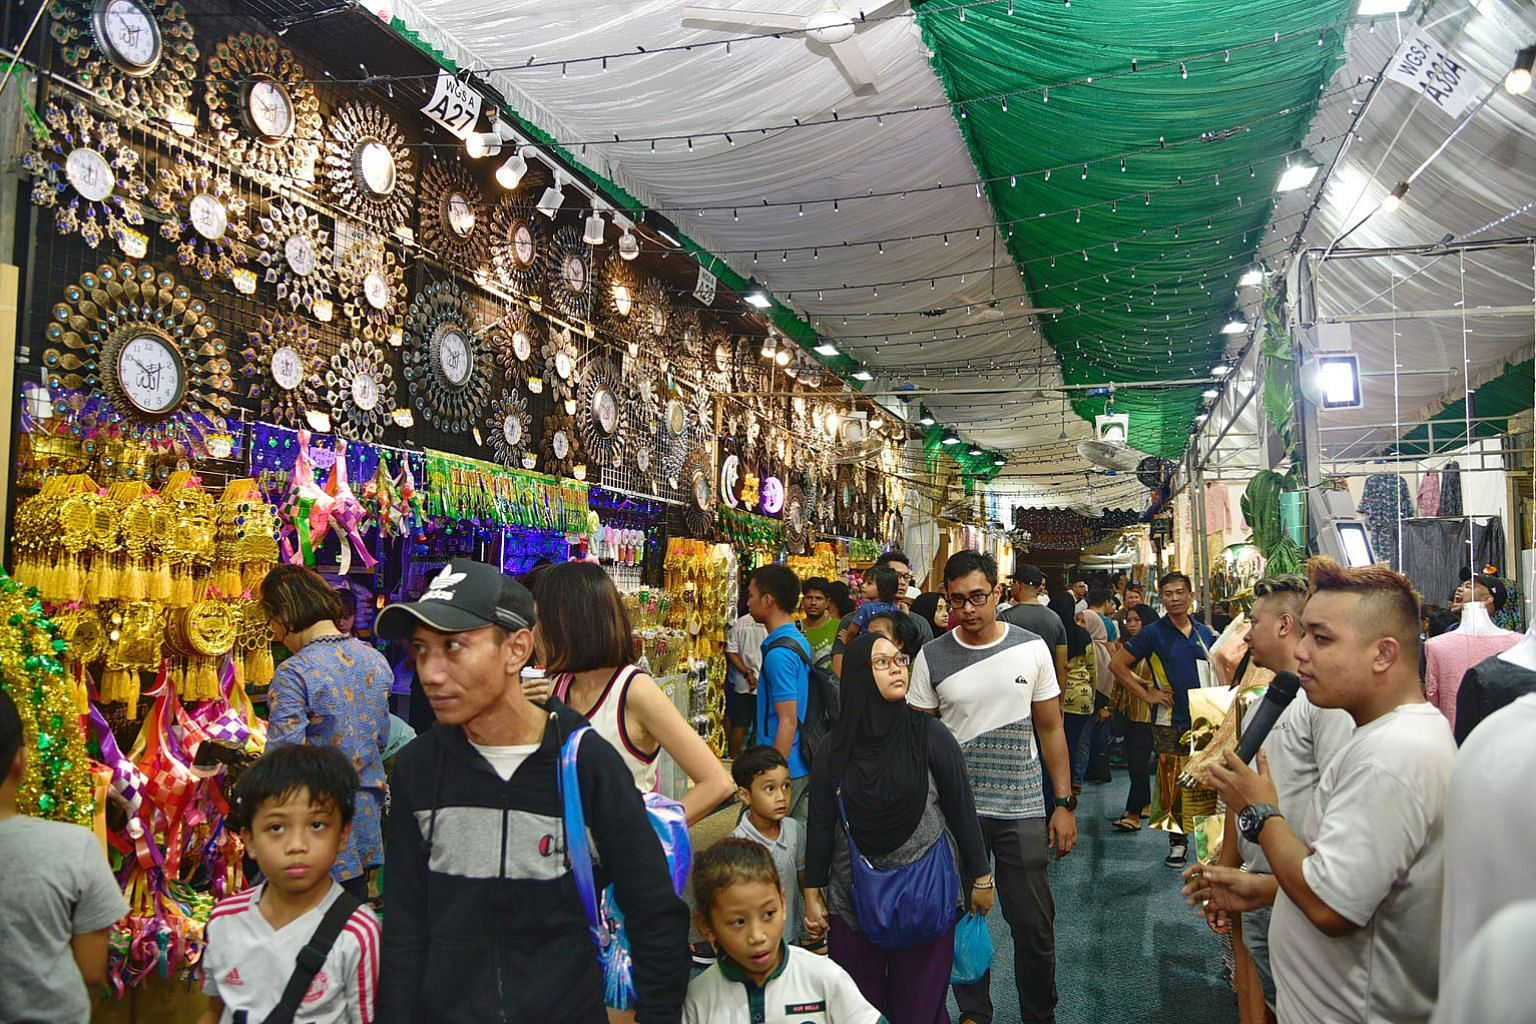 Last year's Hari Raya bazaar in Geylang Serai attracted about two million visitors, the highest number ever recorded for such a bazaar.